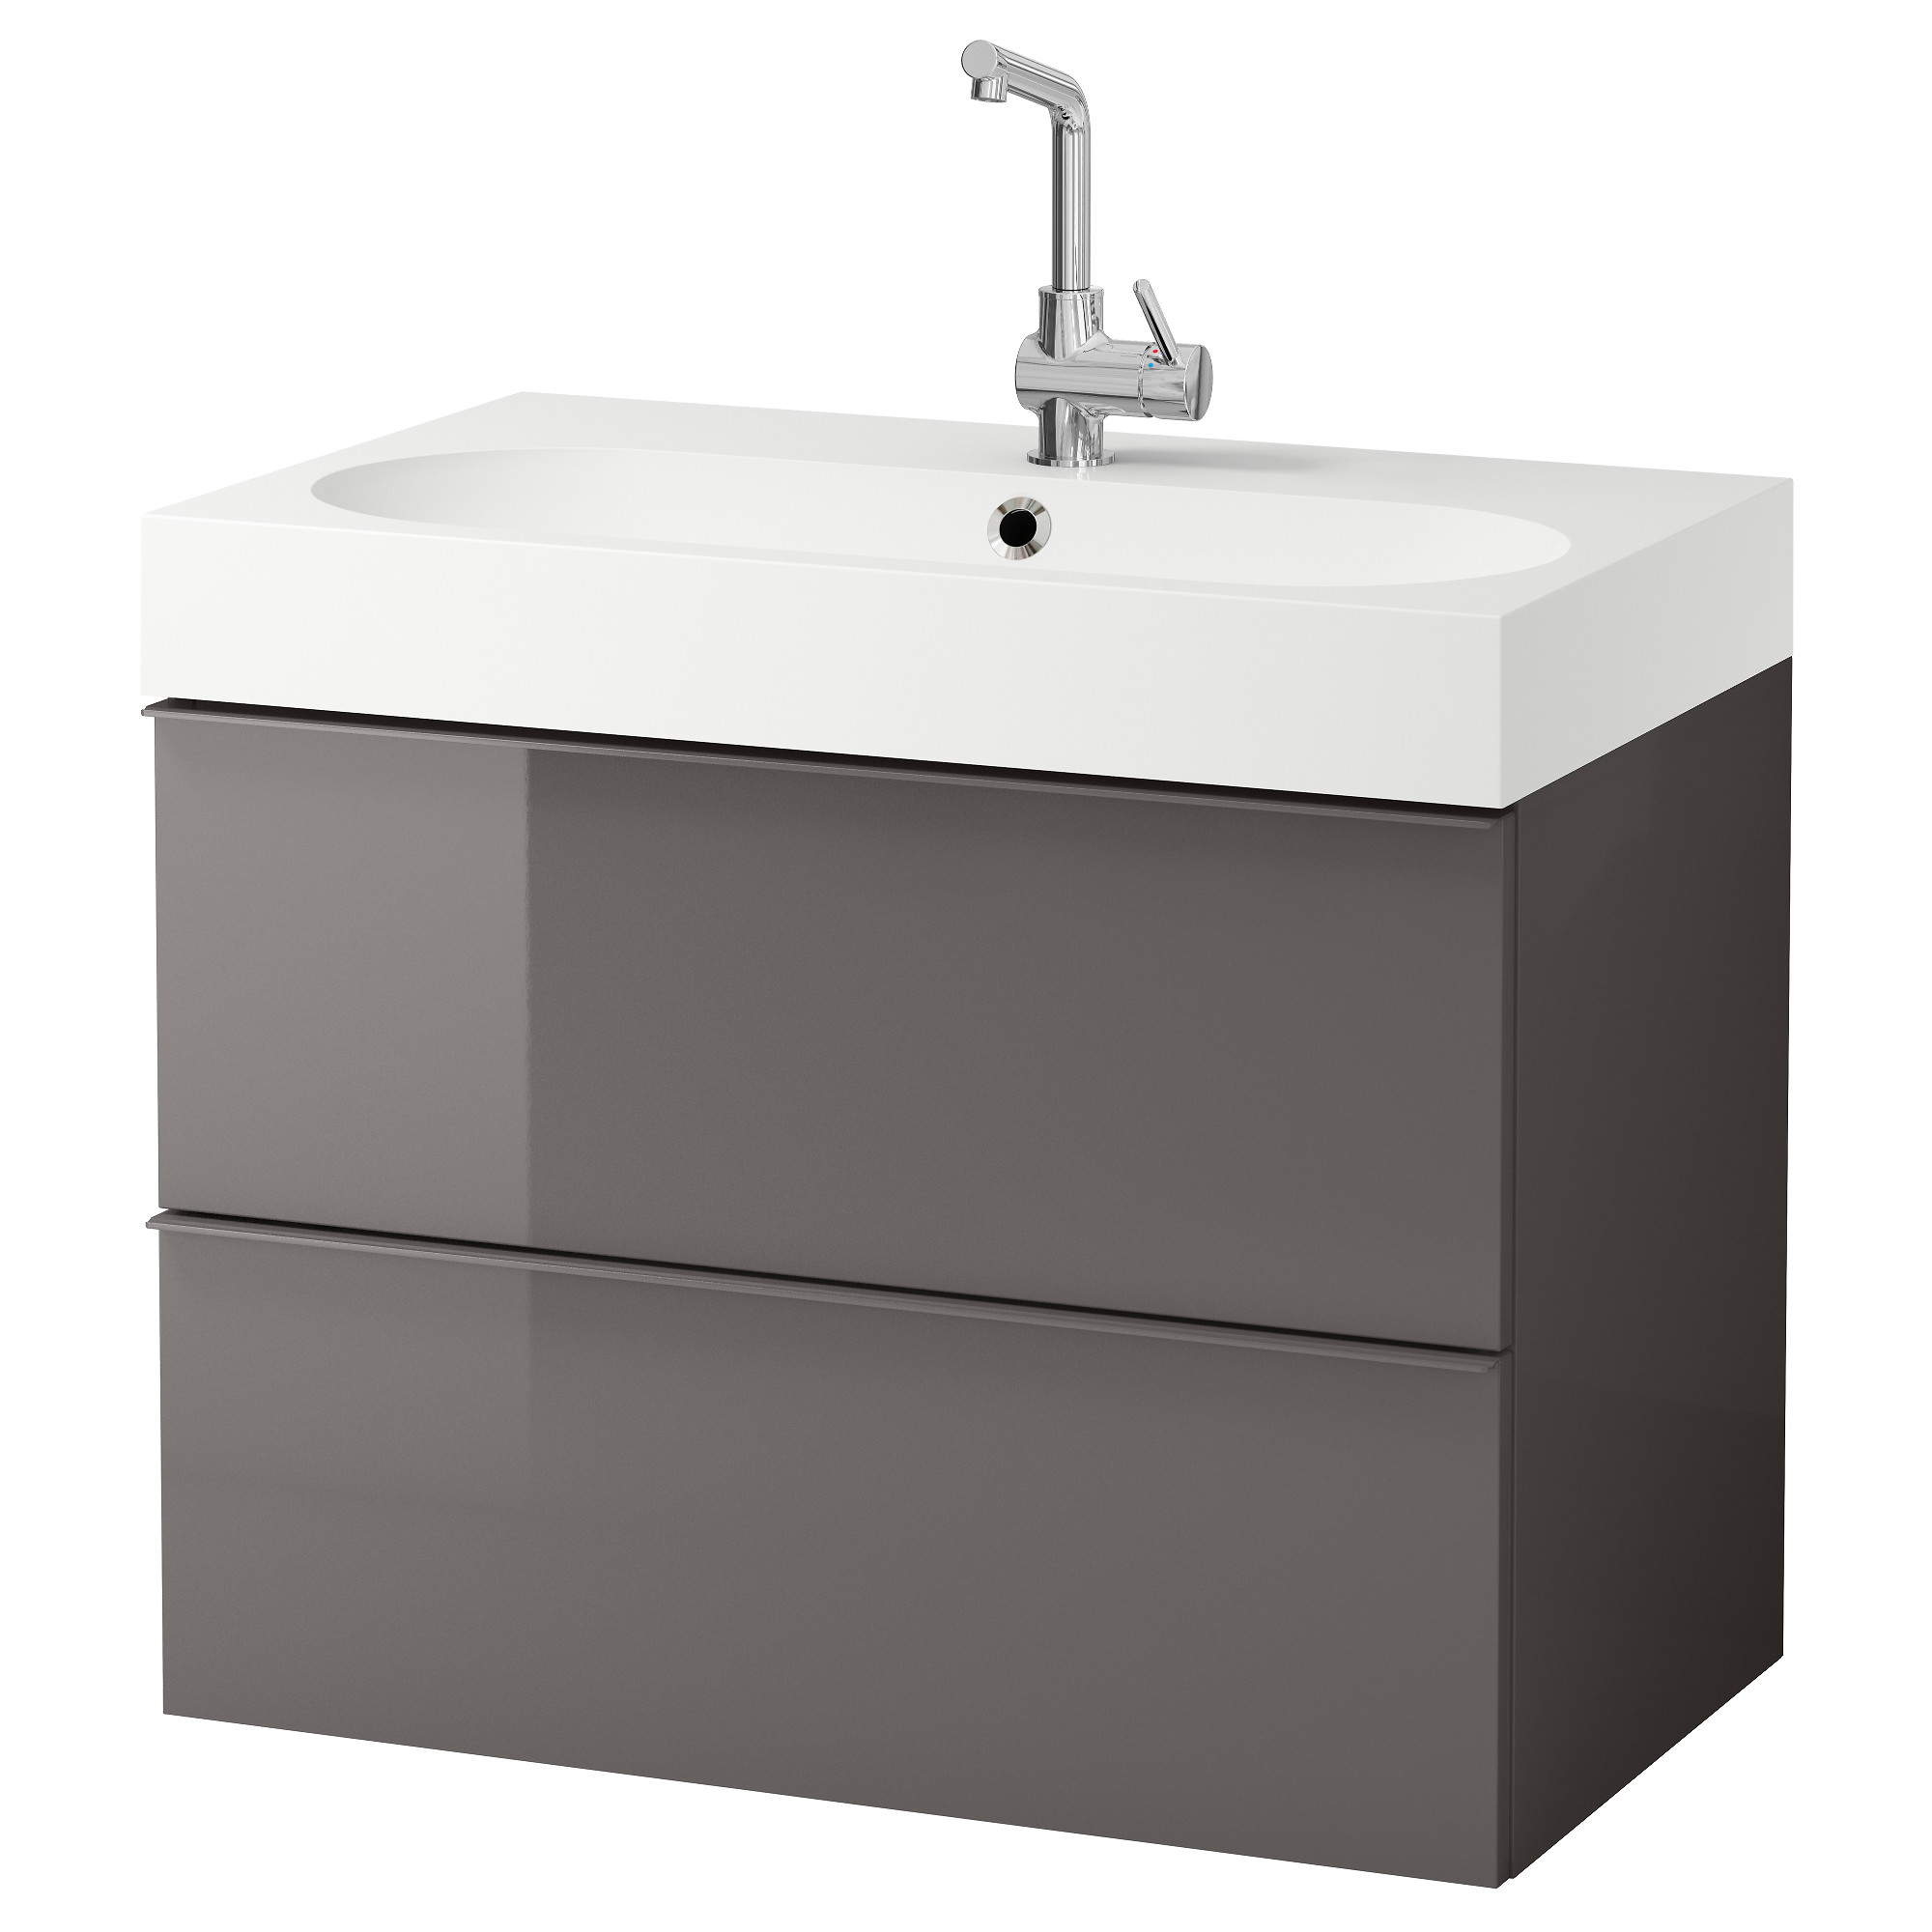 GODMORGON / BRÅVIKEN Sink cabinet with 2 drawers - high gloss gray - IKEA